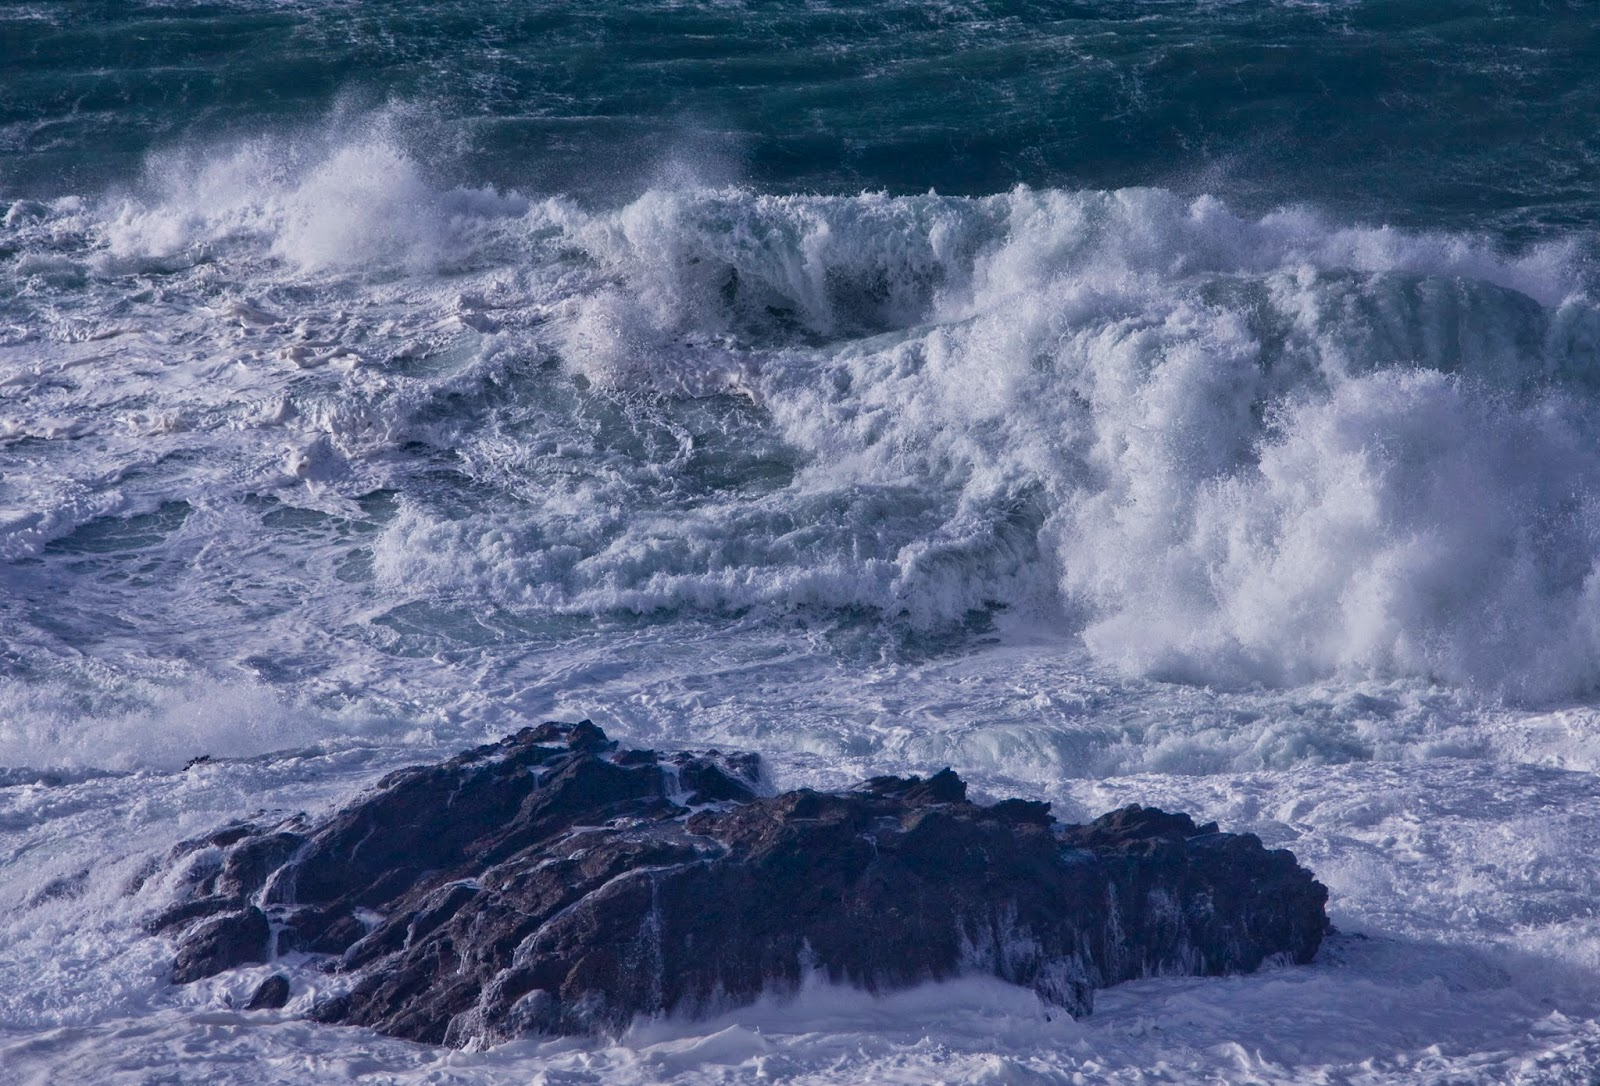 Huge Seas, Rocks, Rough Sea, Waves, Whitewater